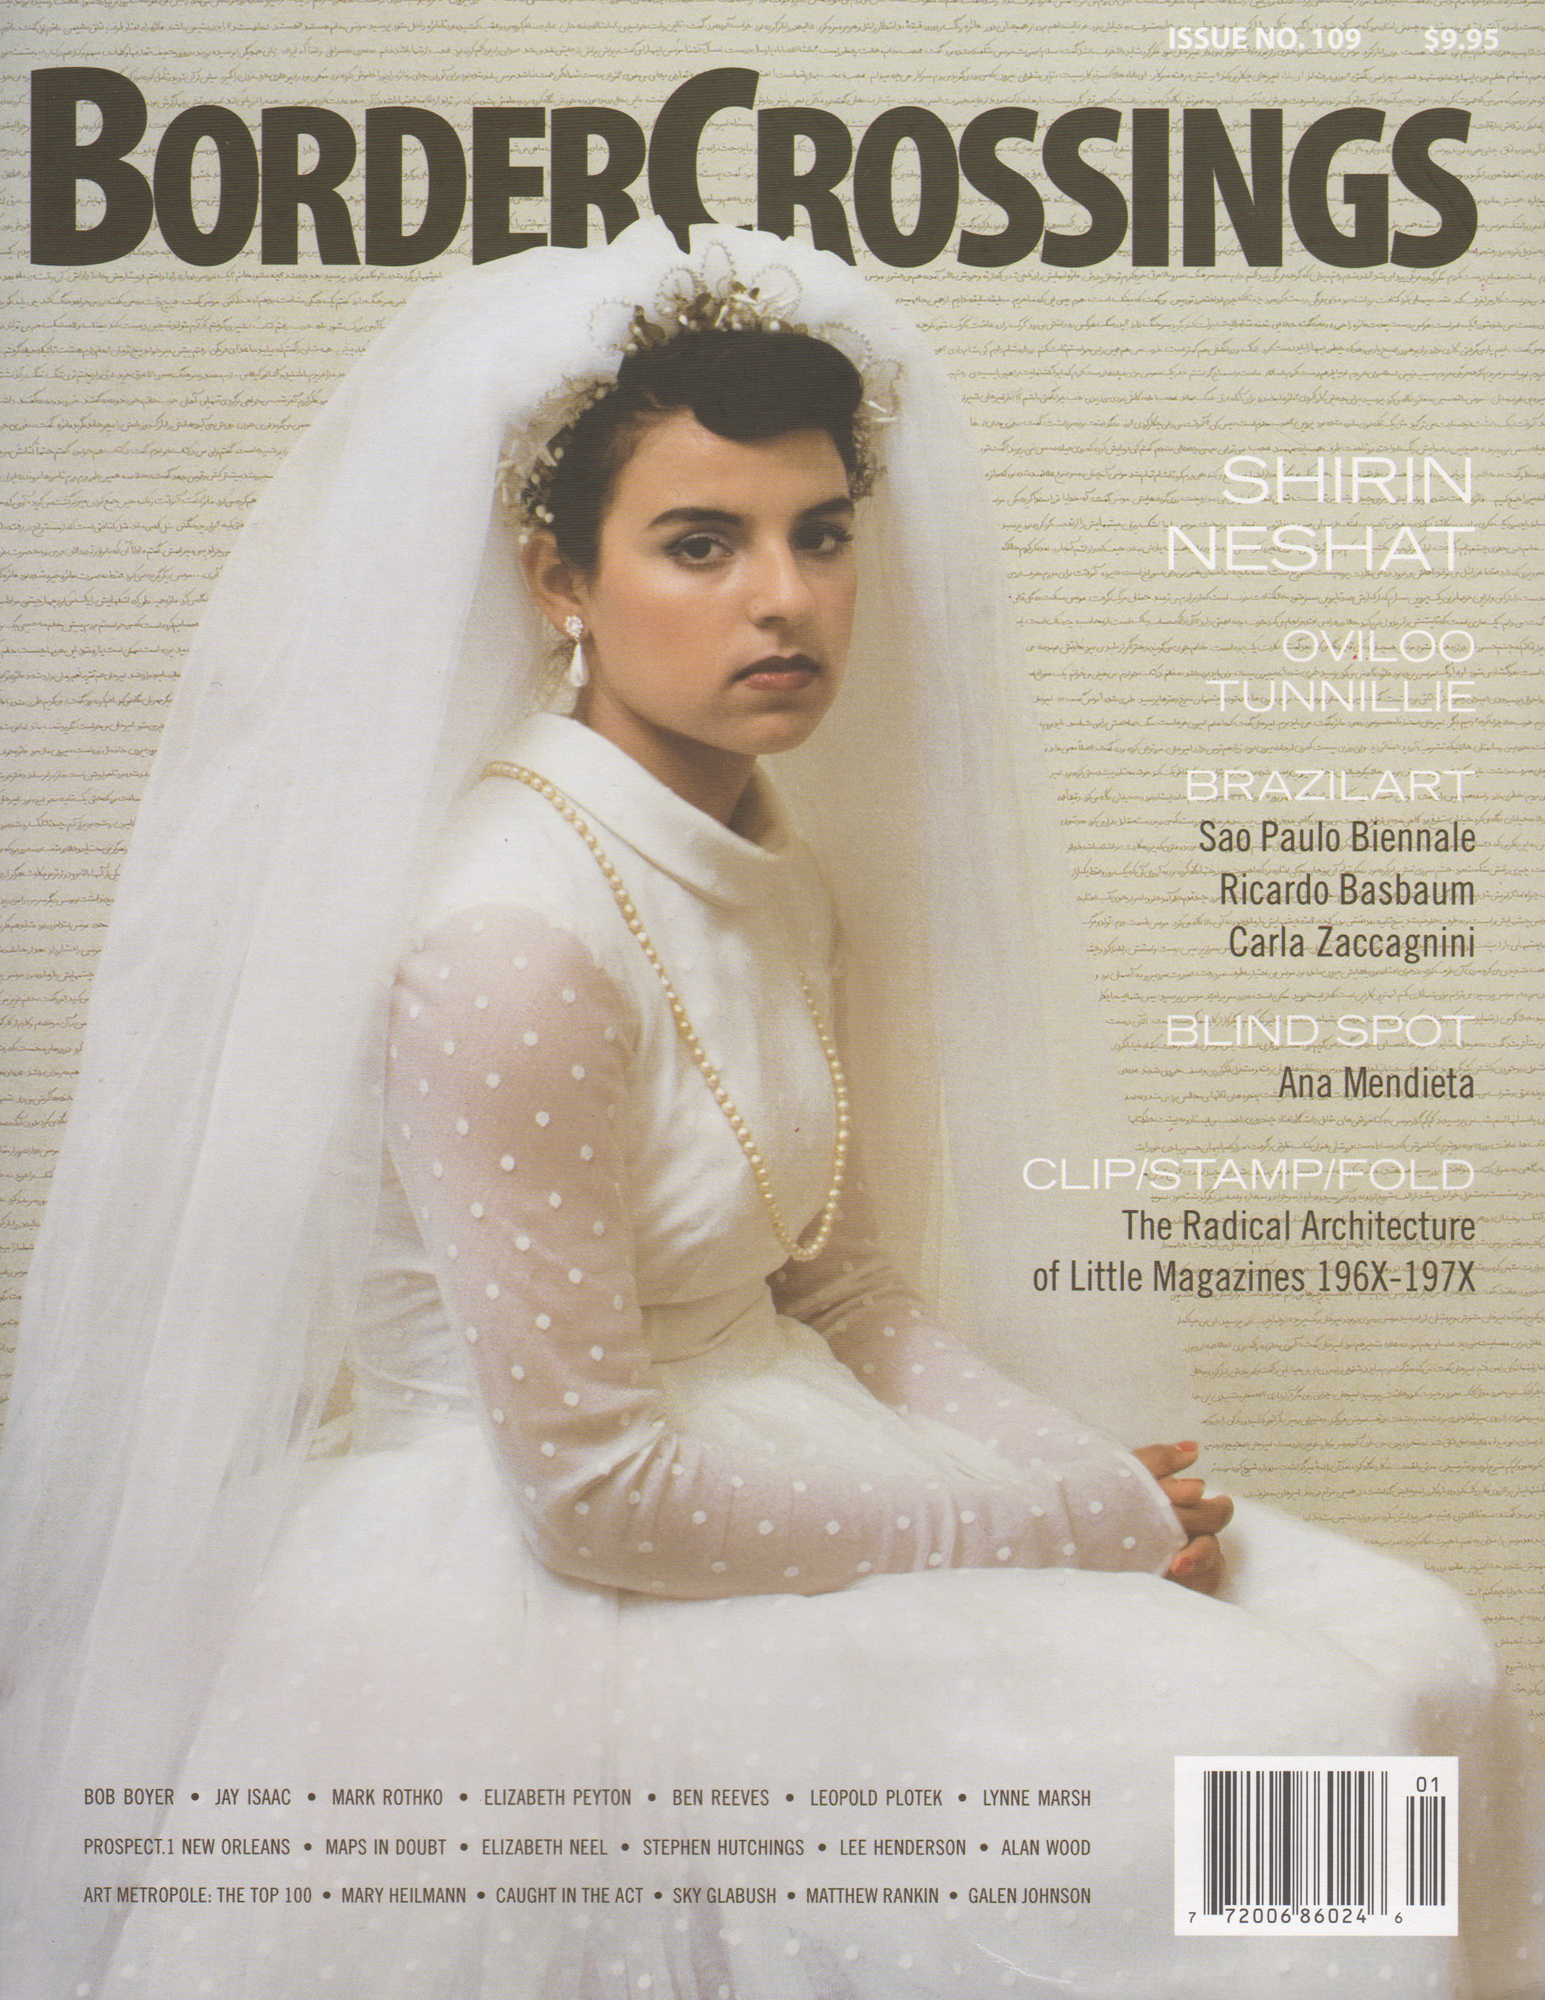 BorderCrossings Magazine , Volume 28, No 1, Issue No. 109, 2009